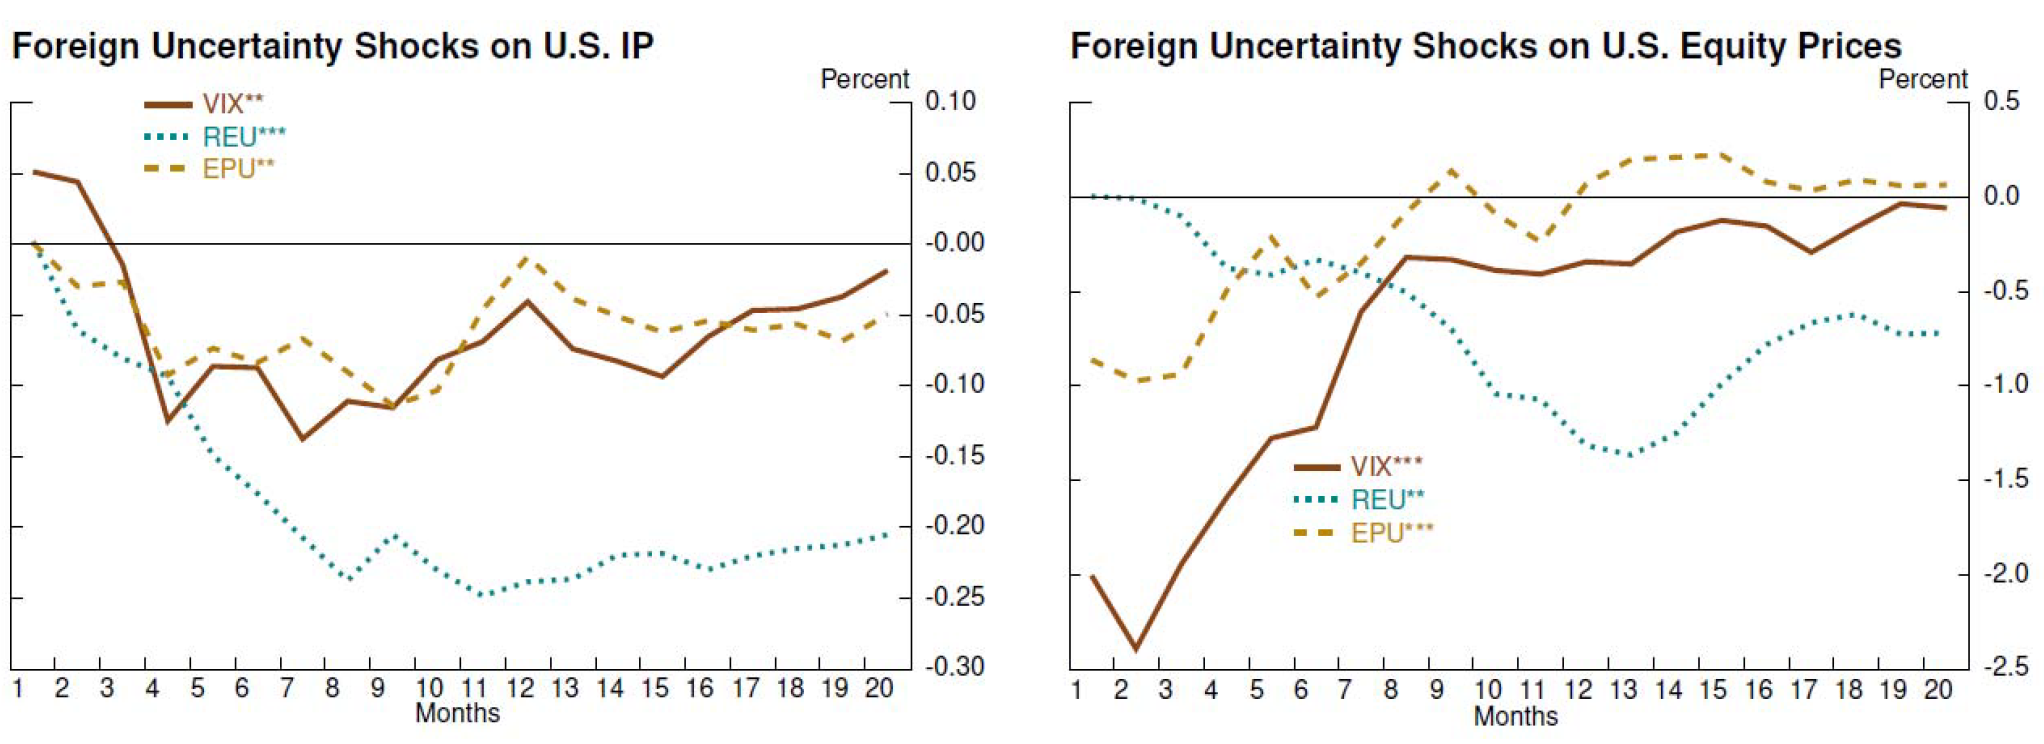 Figure 4. Impact of Foreign Uncertainty. See accessible link for data description.